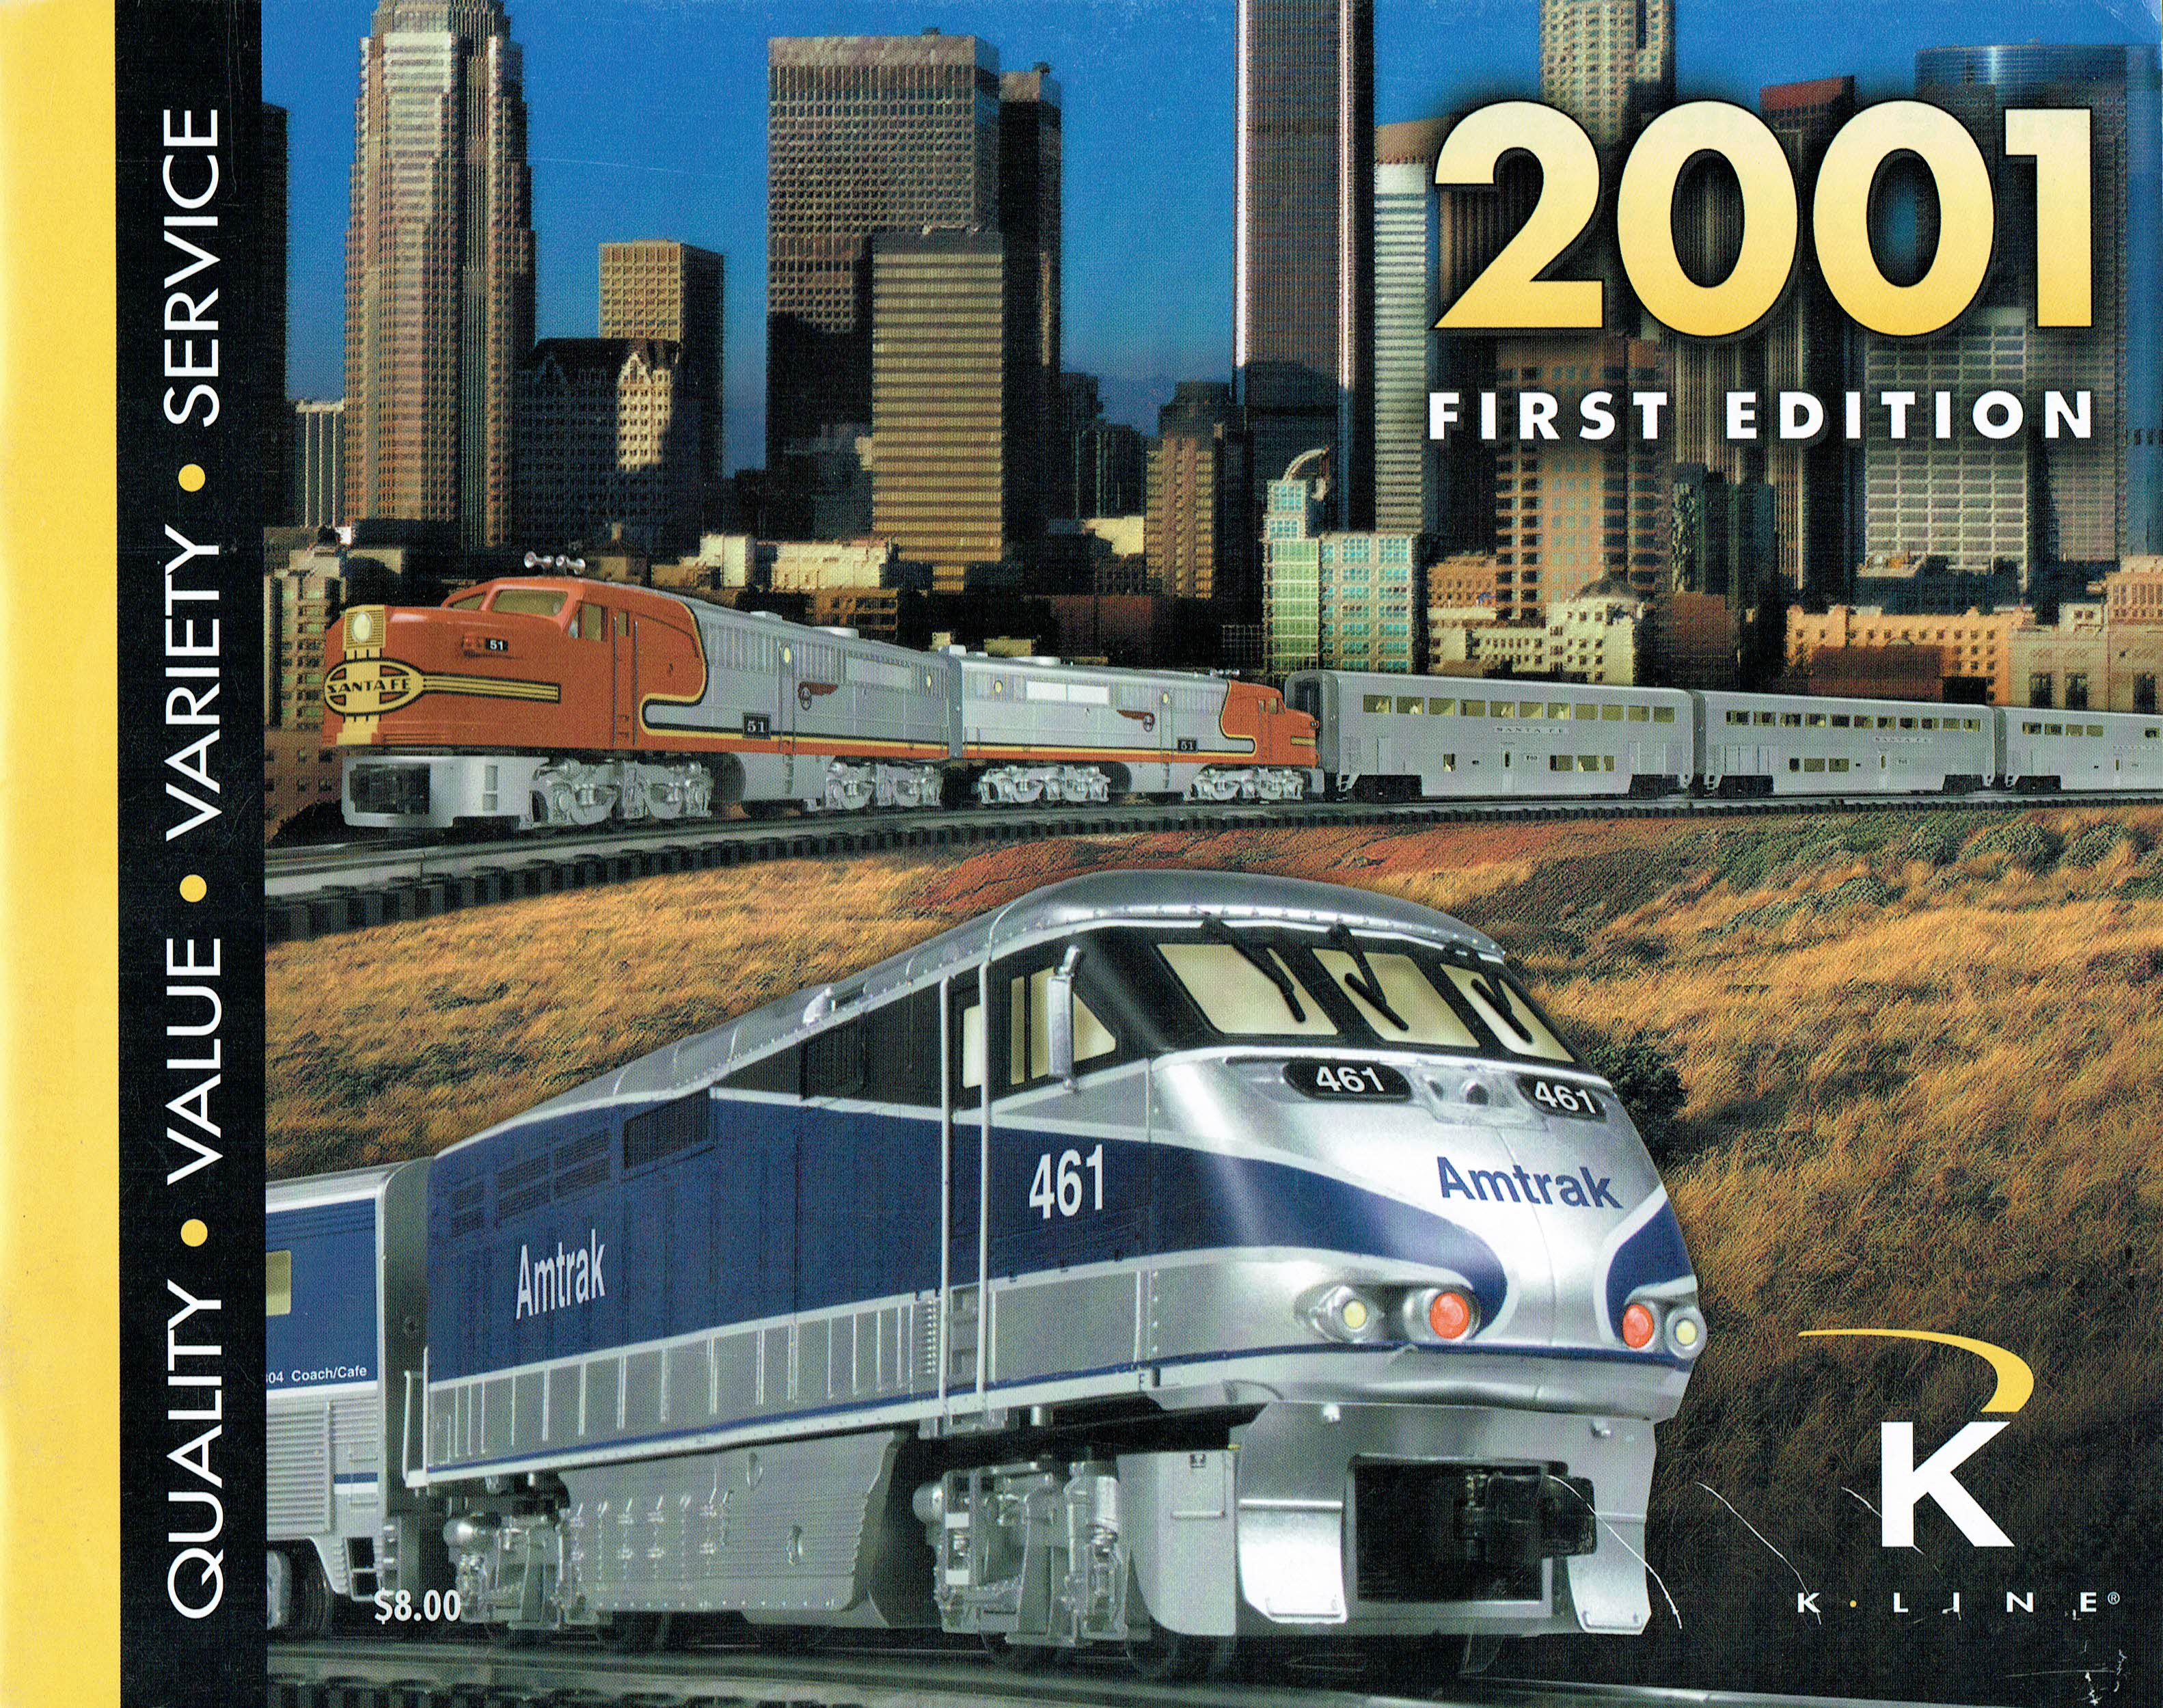 K-Line 2001 First Edition Catalog image